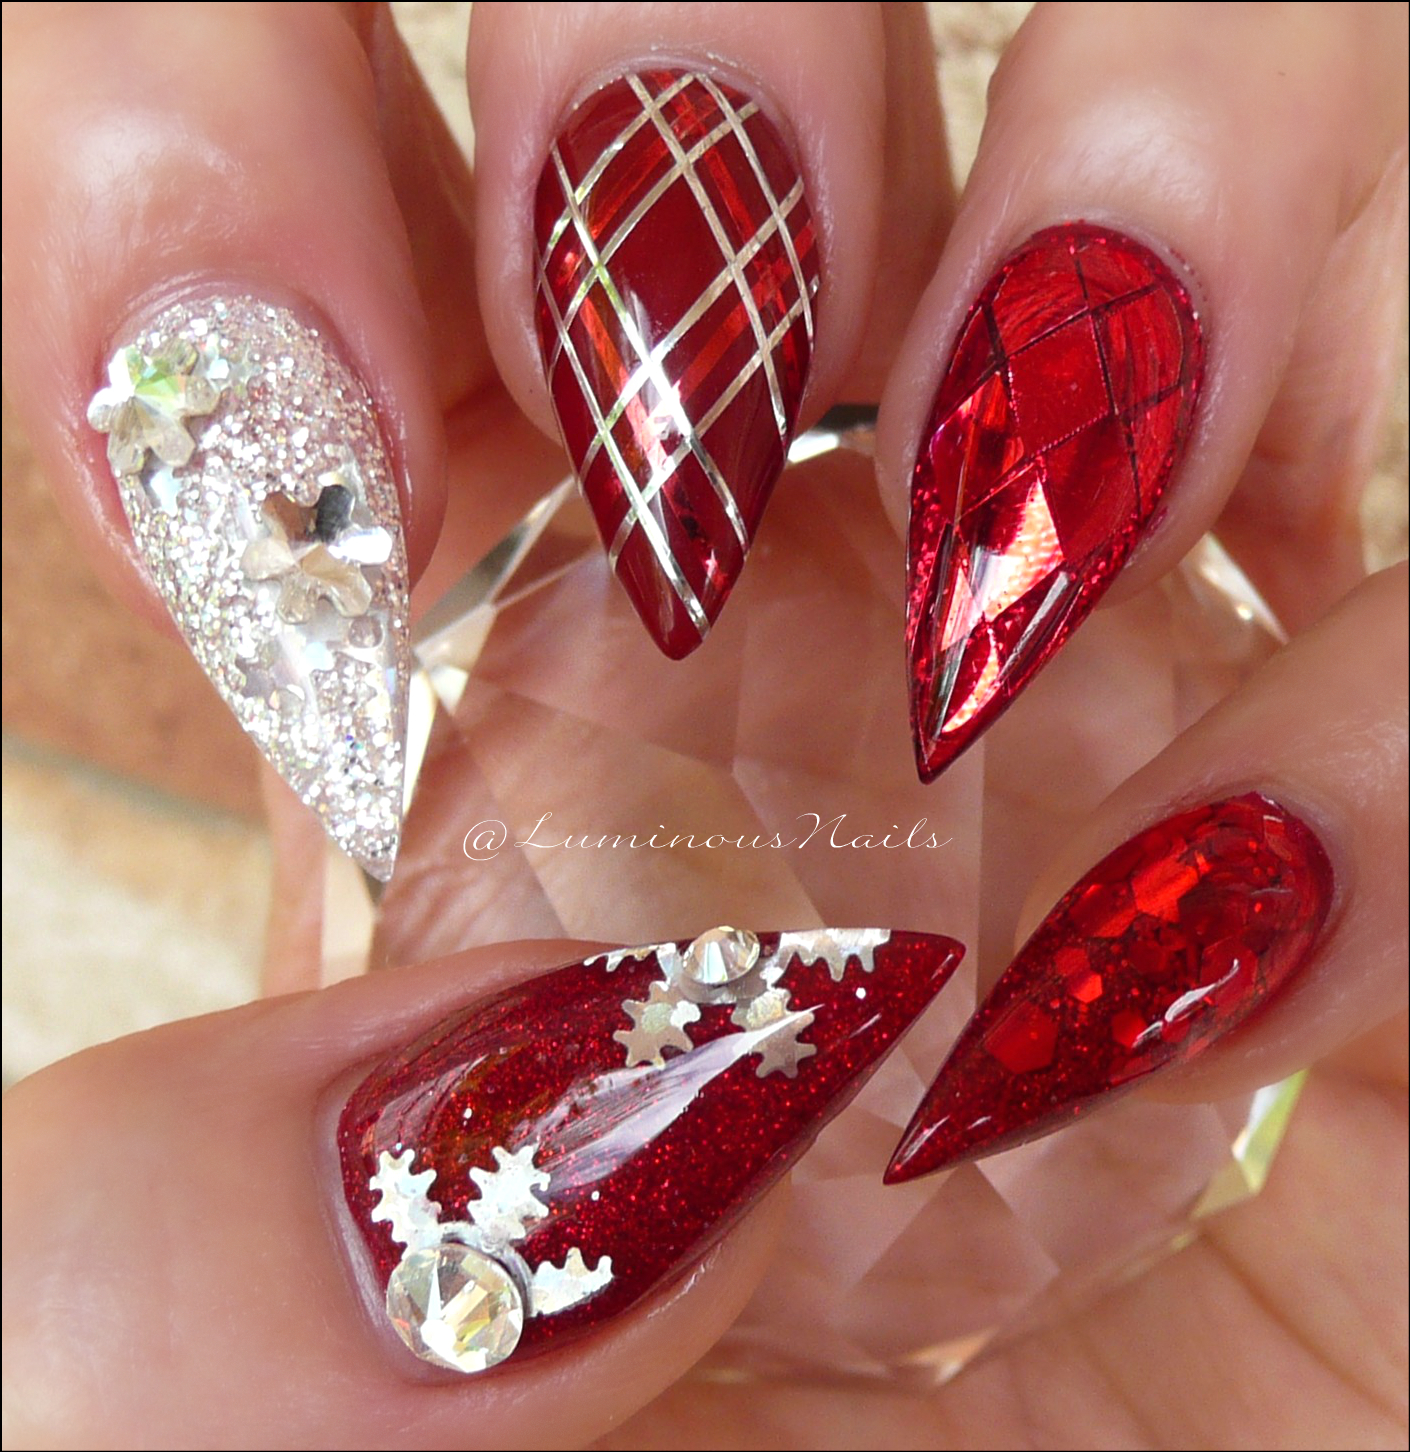 Luminous Nails Christmas Nails Red Silver Christmas Nails